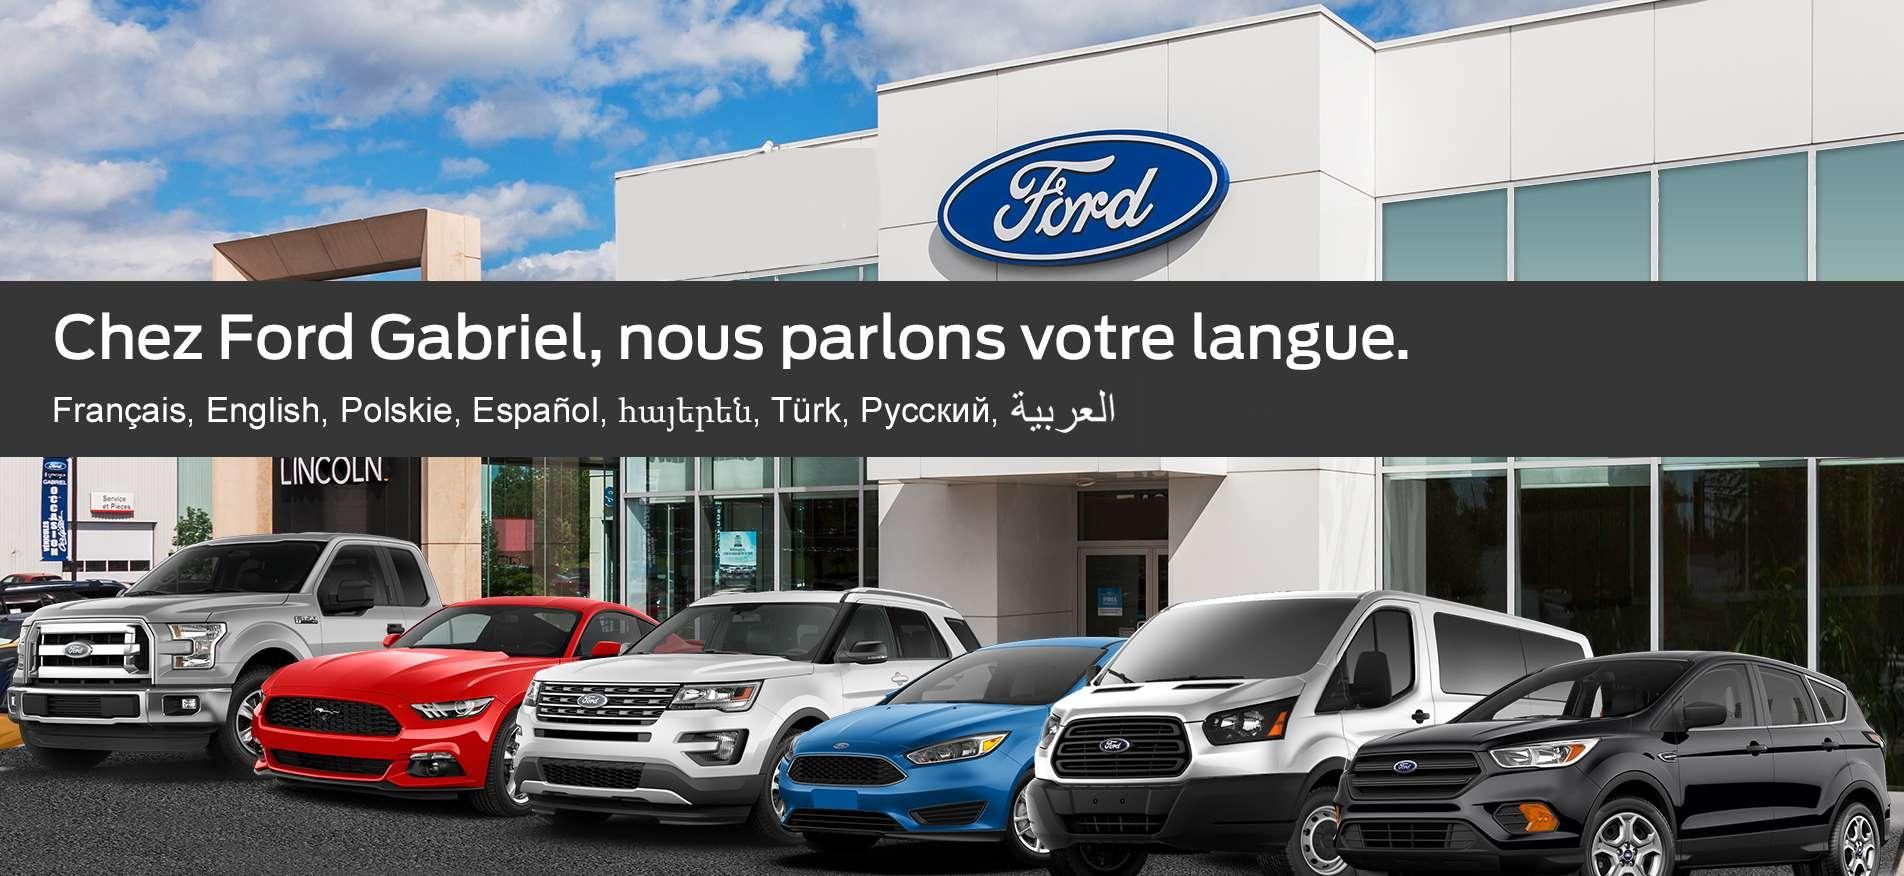 Ford Lincoln Gabriel Montreal Français, English, Polskie, Español, հայերեն, Türk, русский, العربية